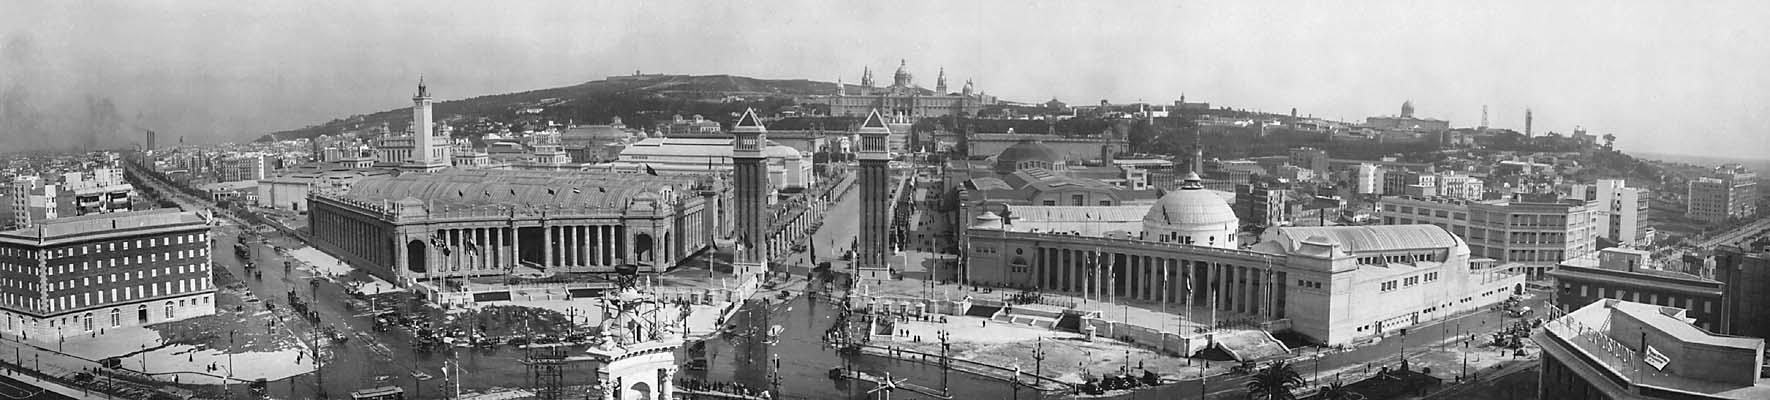 http://upload.wikimedia.org/wikipedia/commons/2/24/BarcelonaExpositionPanorama.1929.ws.jpg